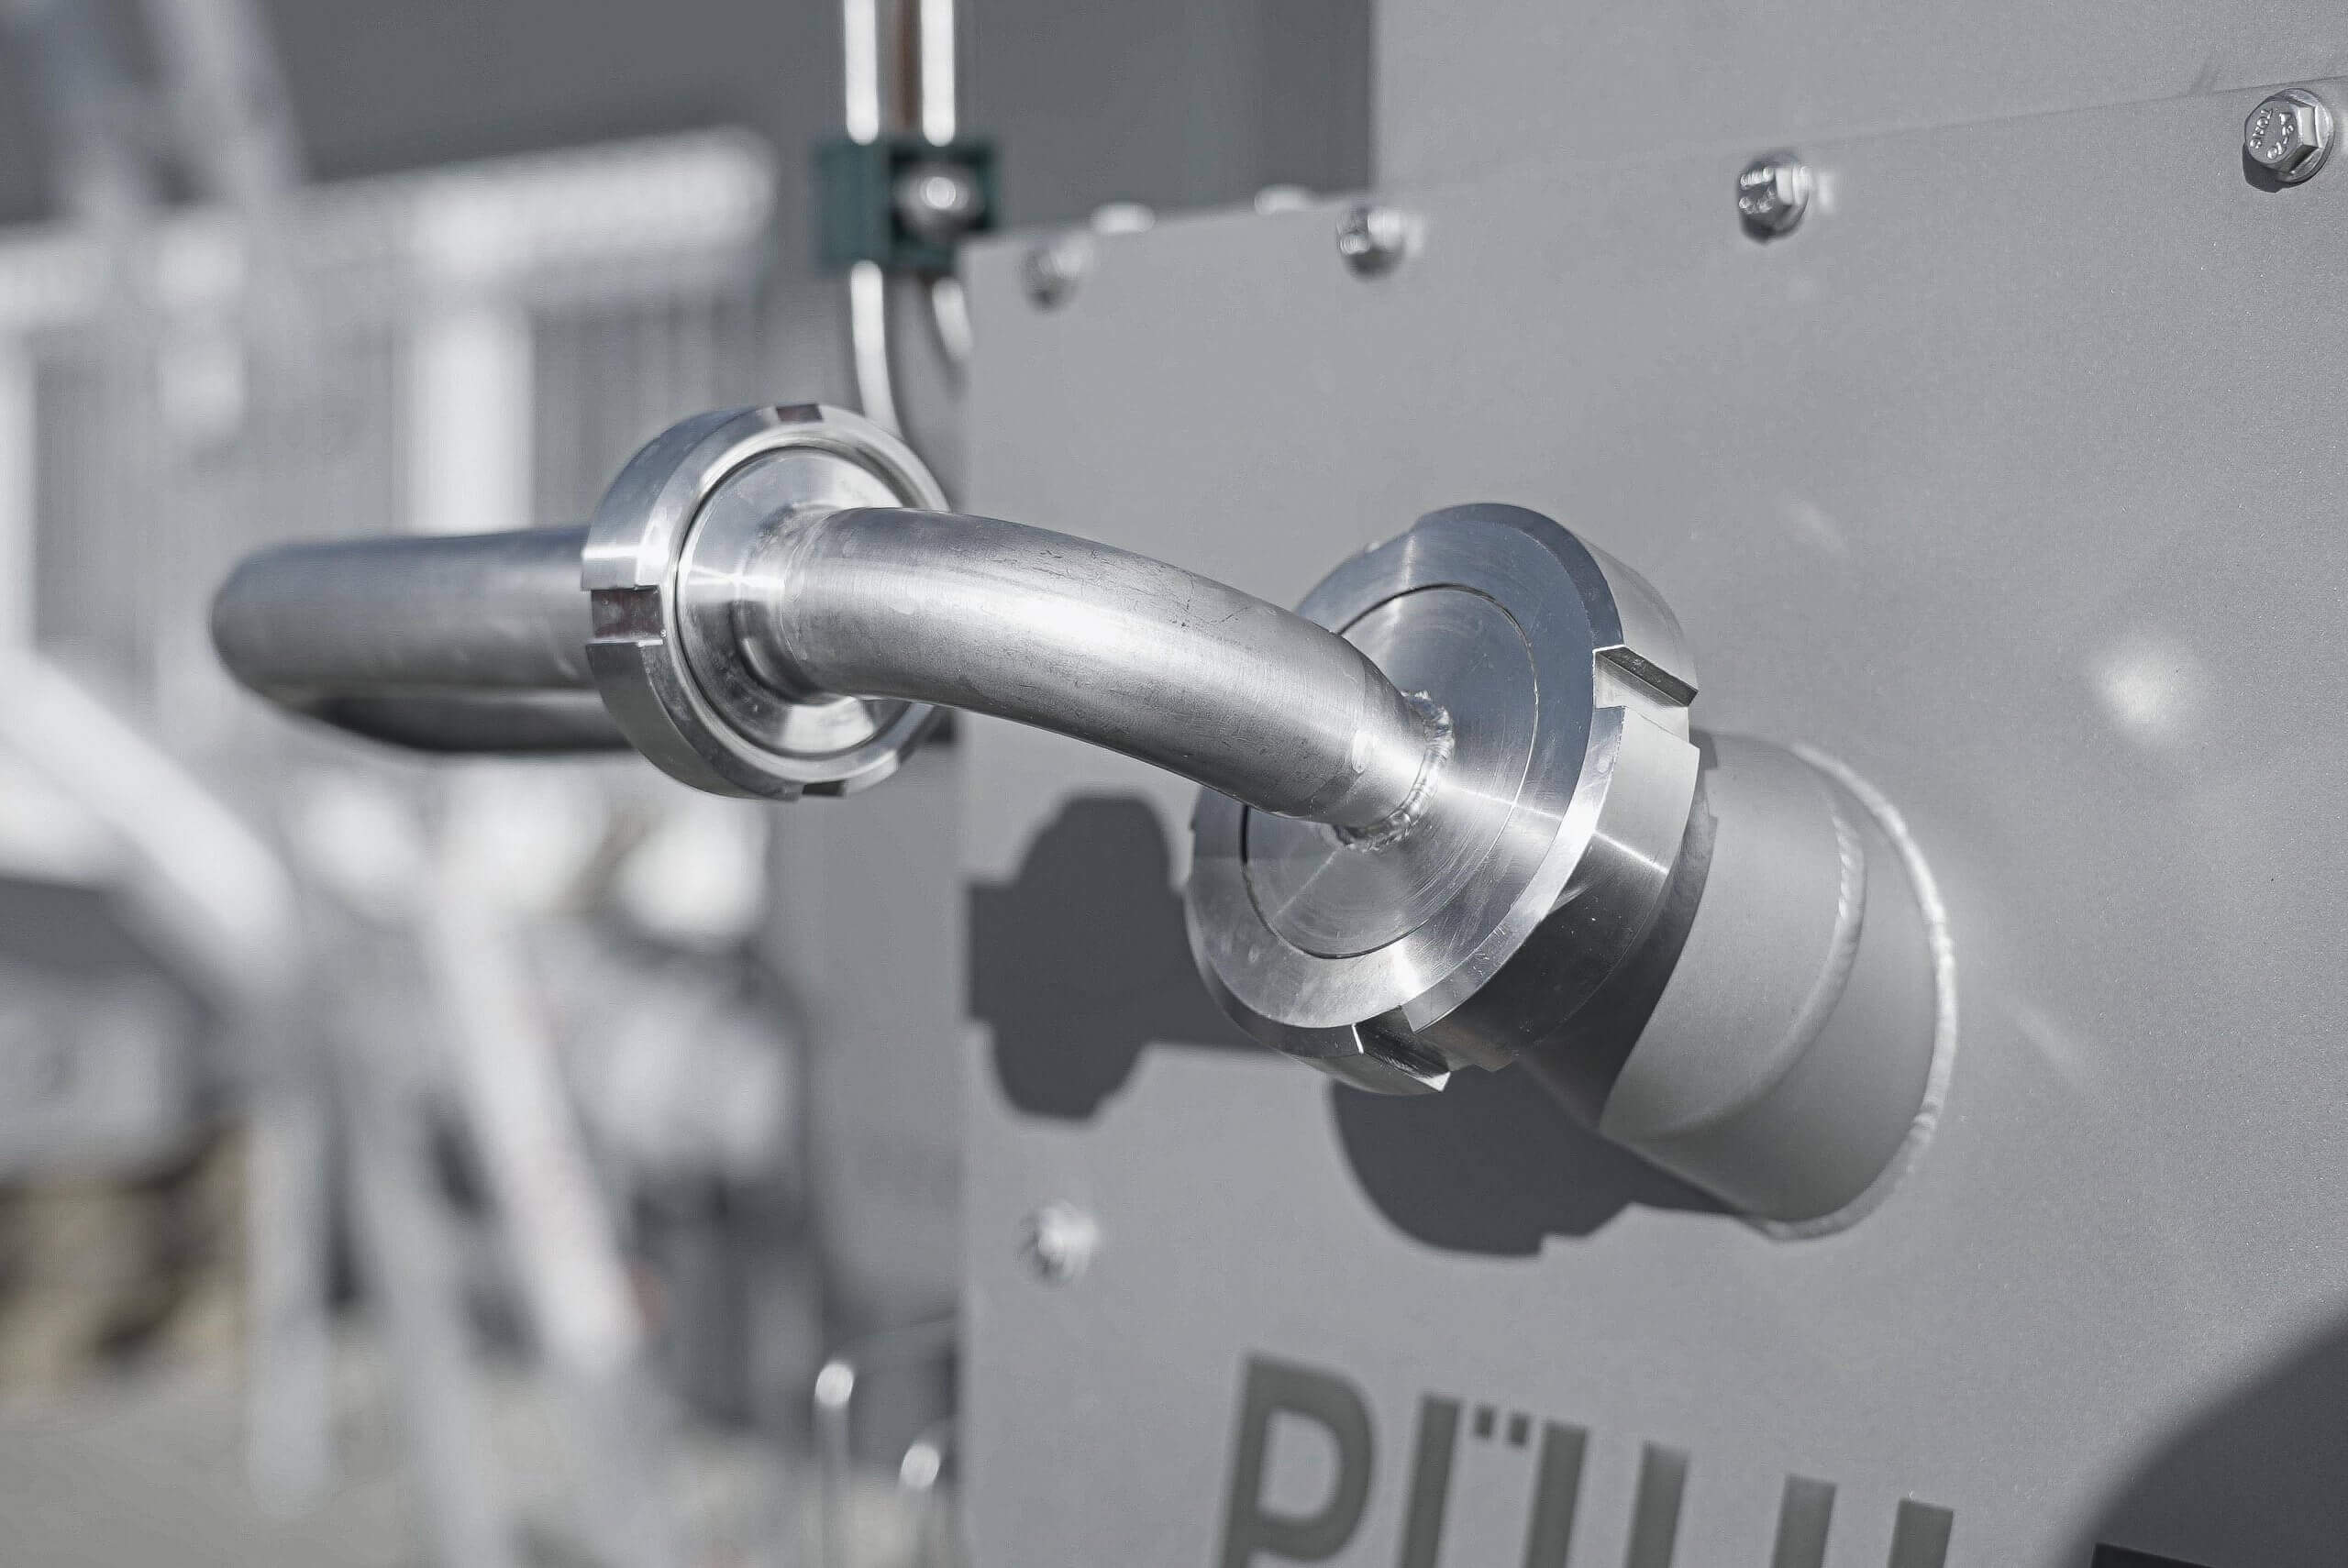 PUEHLER draining presses are made of high quality stainless steel